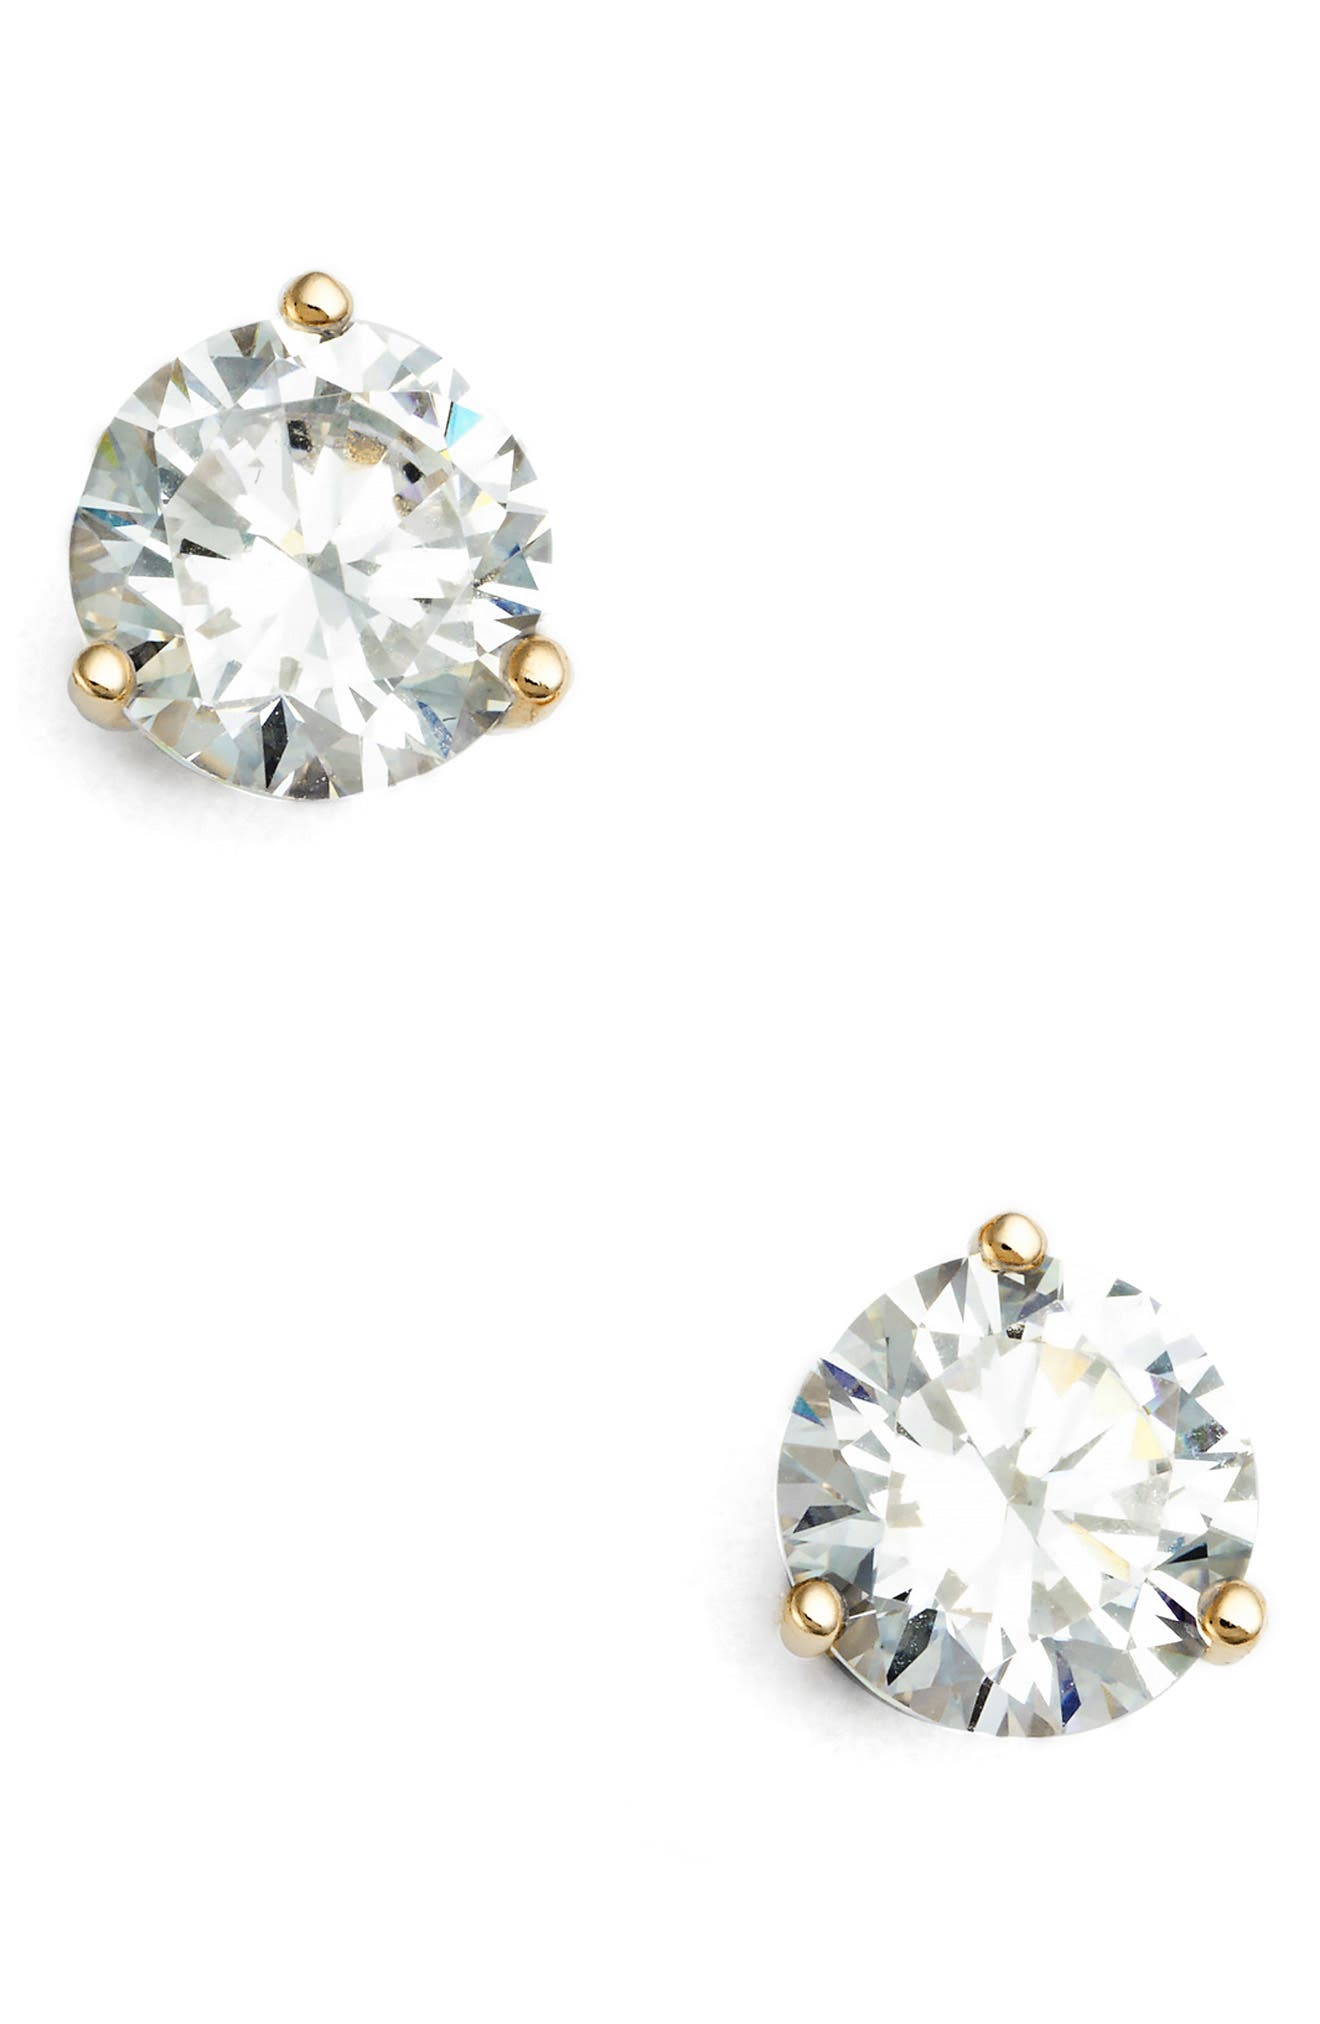 Cubic Zirconia Earrings,                         Main,                         color, Clear Cz/ Gold Vermeil